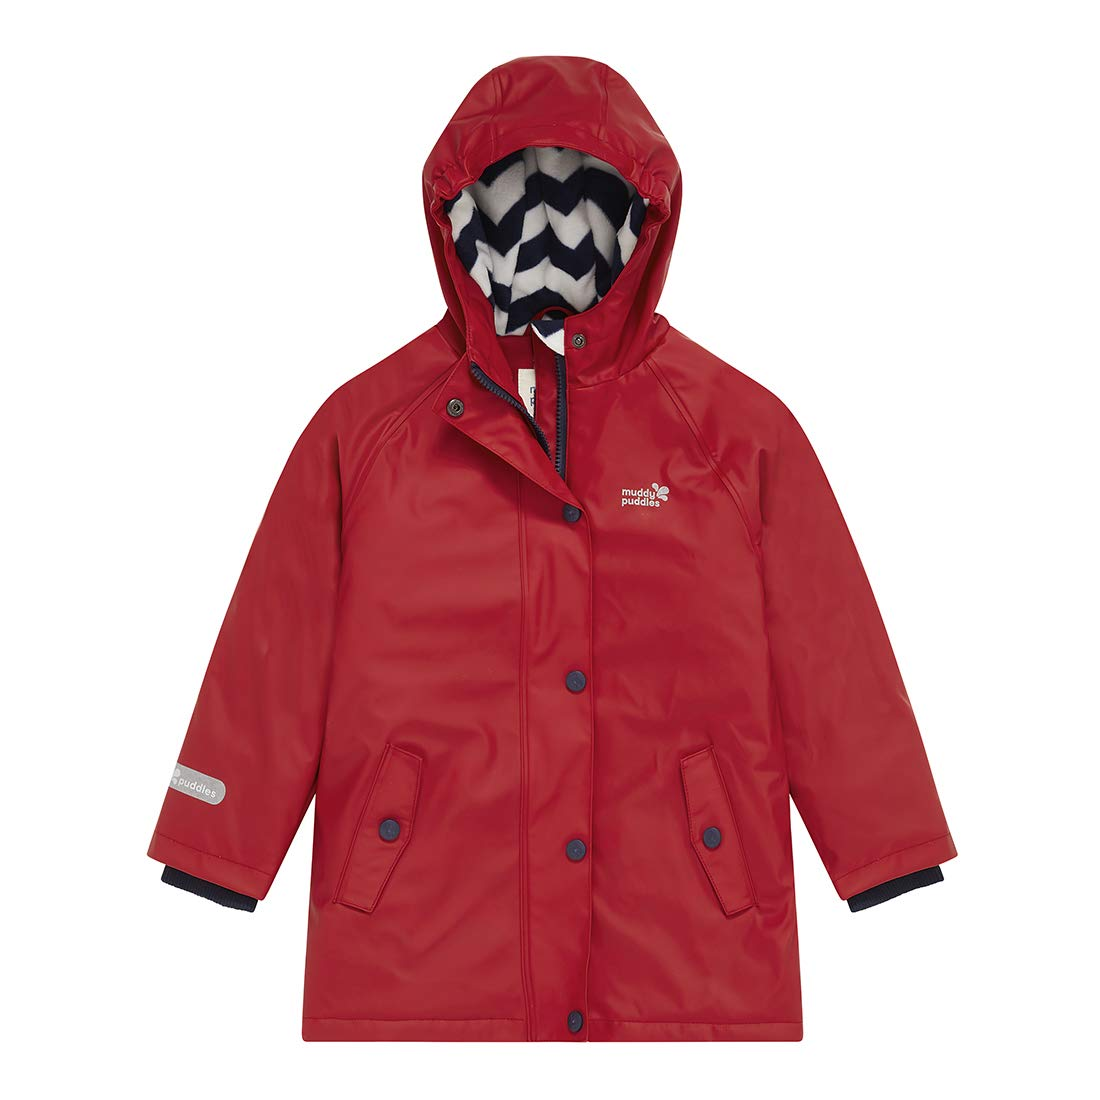 Muddy Puddles Children's Puddleflex Wateproof Jacket Rain Proof Insulated Polar Fleece Lining Durable Fully Taped Seams Windproof Double Ended Zip Storm Flap Flexible Soft PU Kids Unisex Boys Girls